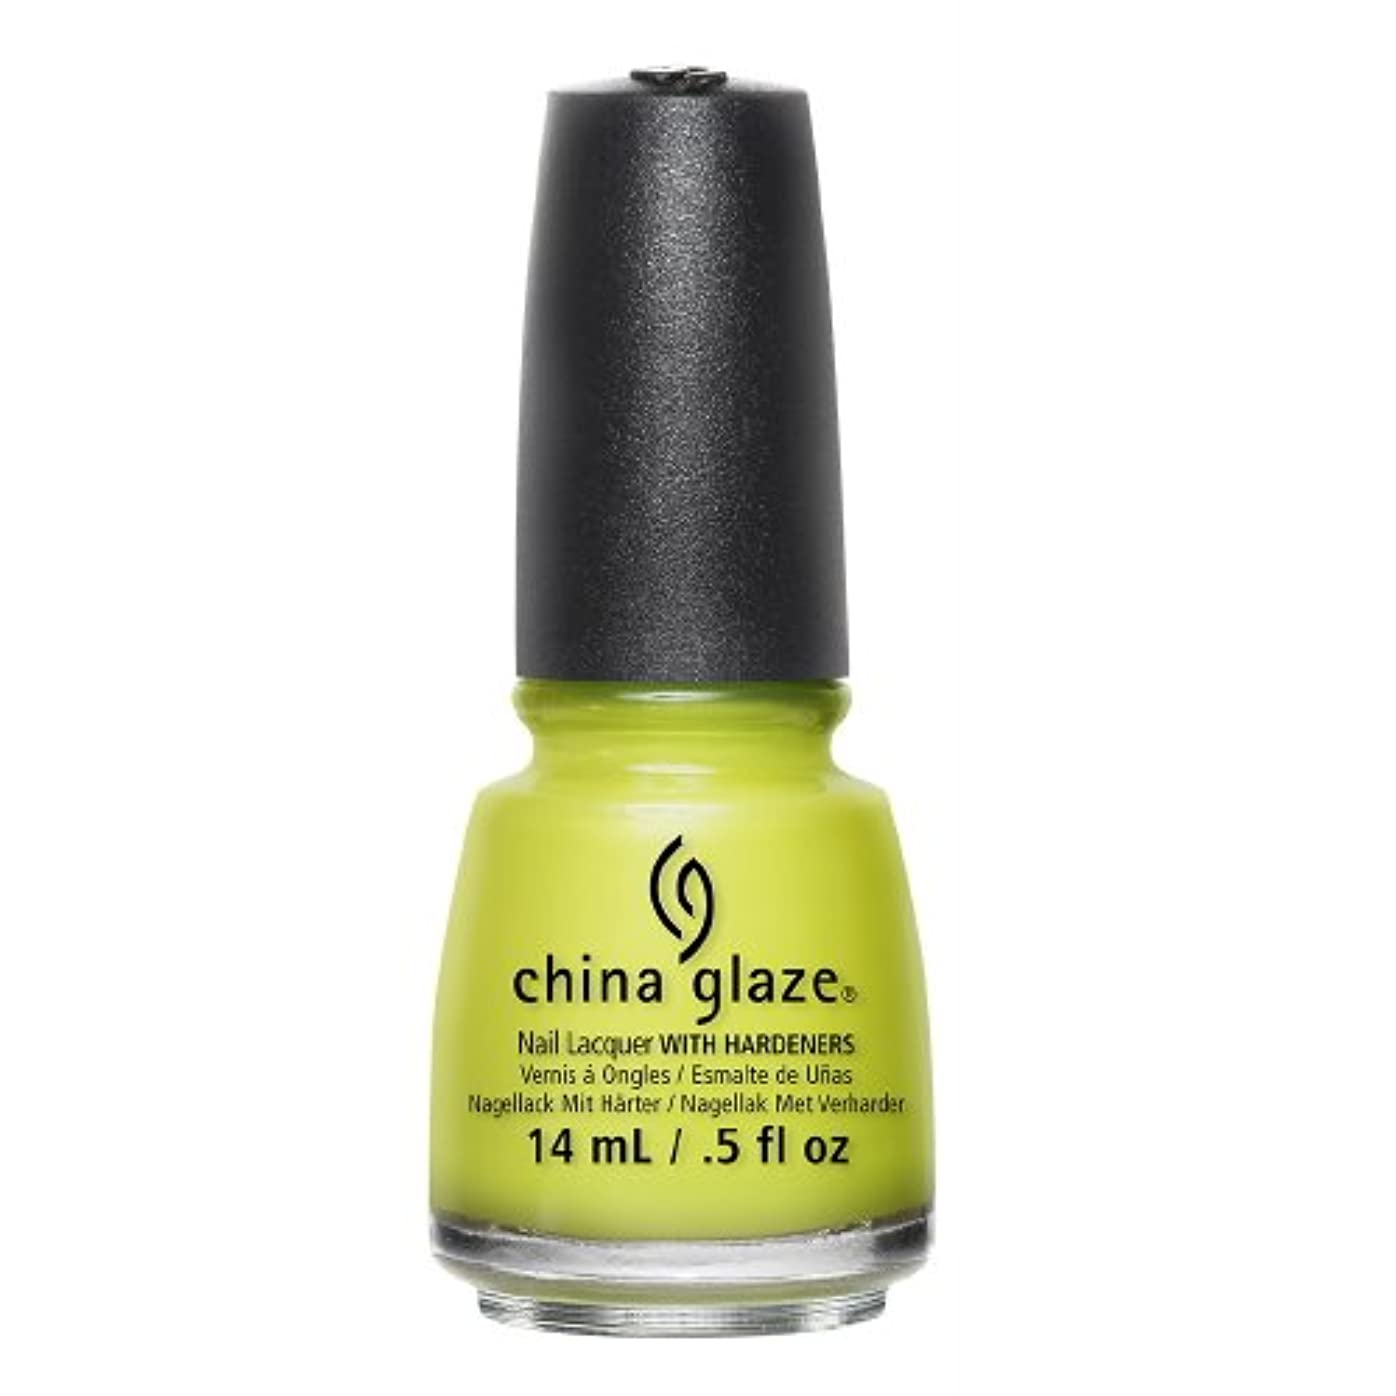 レッスン今までにおい(3 Pack) CHINA GLAZE Nail Lacquer - Road Trip - Trip of A Limetime (並行輸入品)